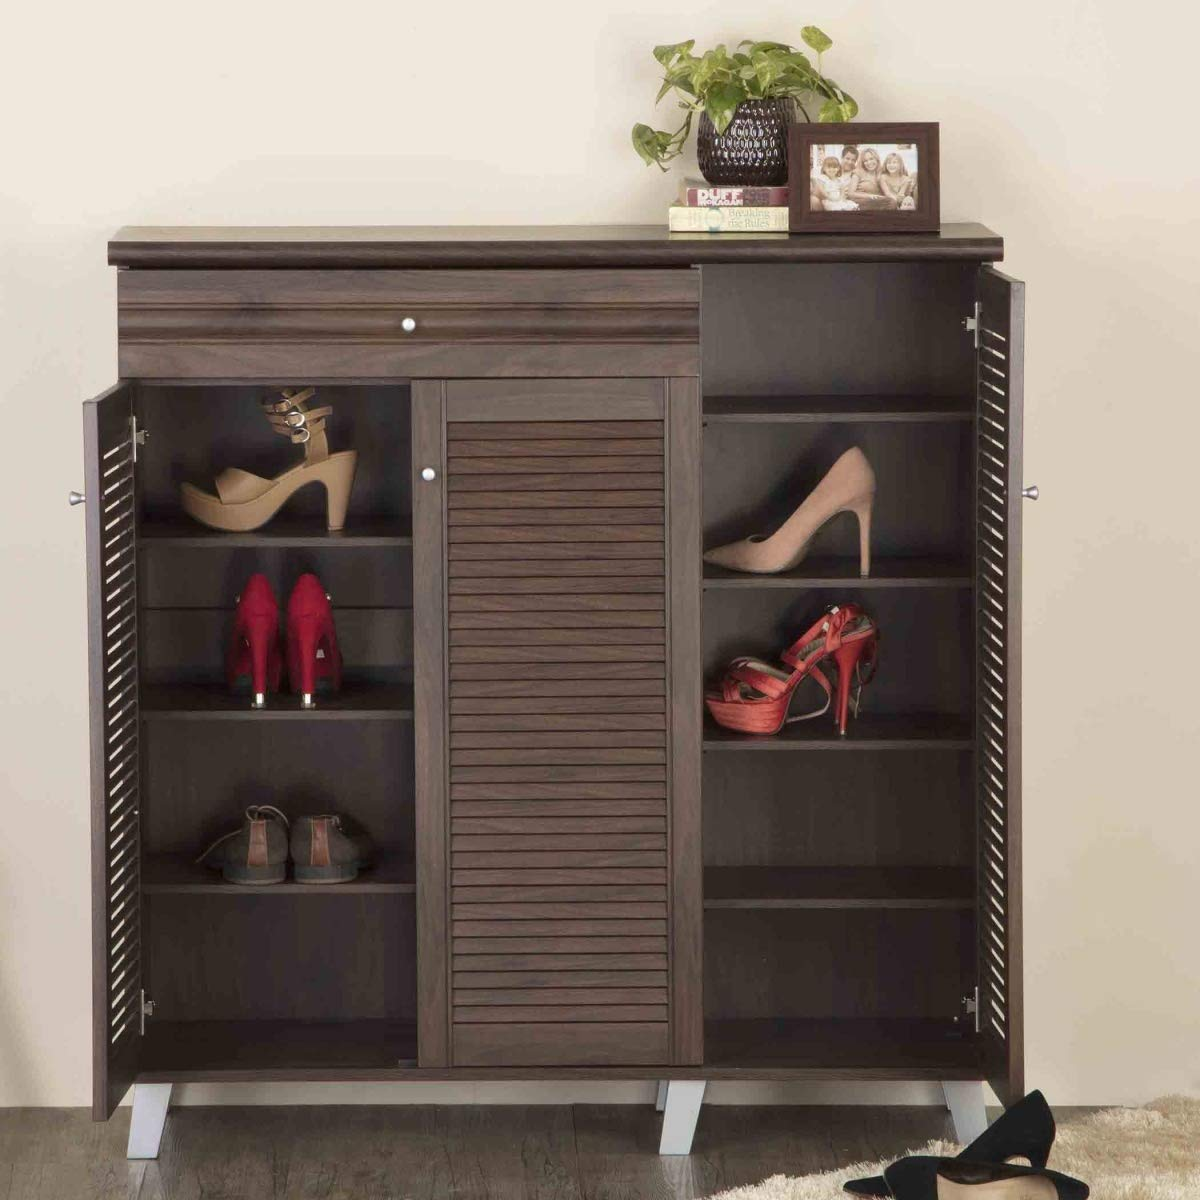 Home Centre Lewis Three Door Shoe Cabinet with One Drawer- 26 Shoes